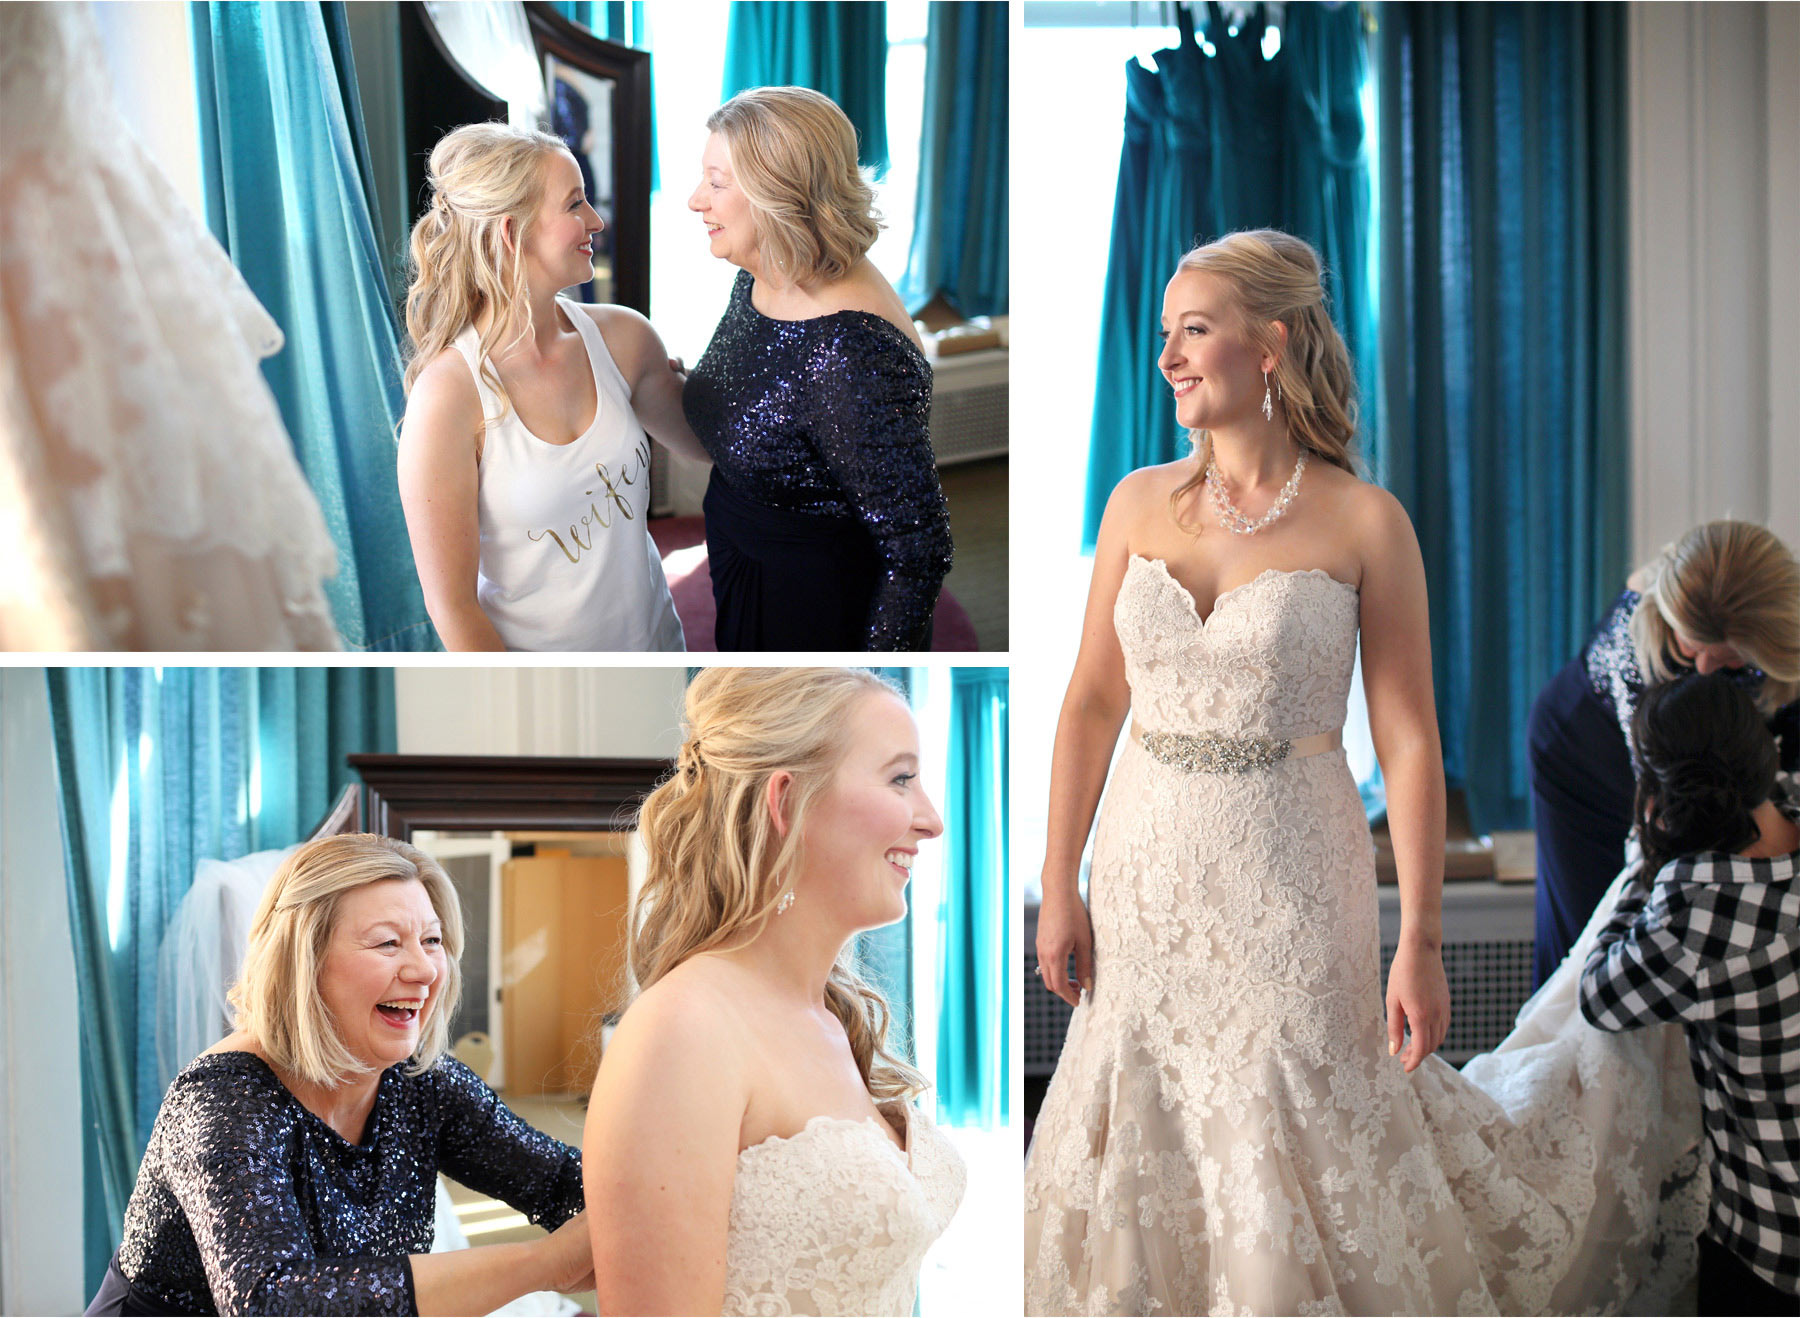 03-Duluth-Minnesota-Wedding-Photographer-by-Andrew-Vick-Photography-Fall-Autumn-Greysolon-Ballroom-Getting-Ready-Bride-Mother-Parents-Bridesmaids-Dress-Molly-and-Carson.jpg